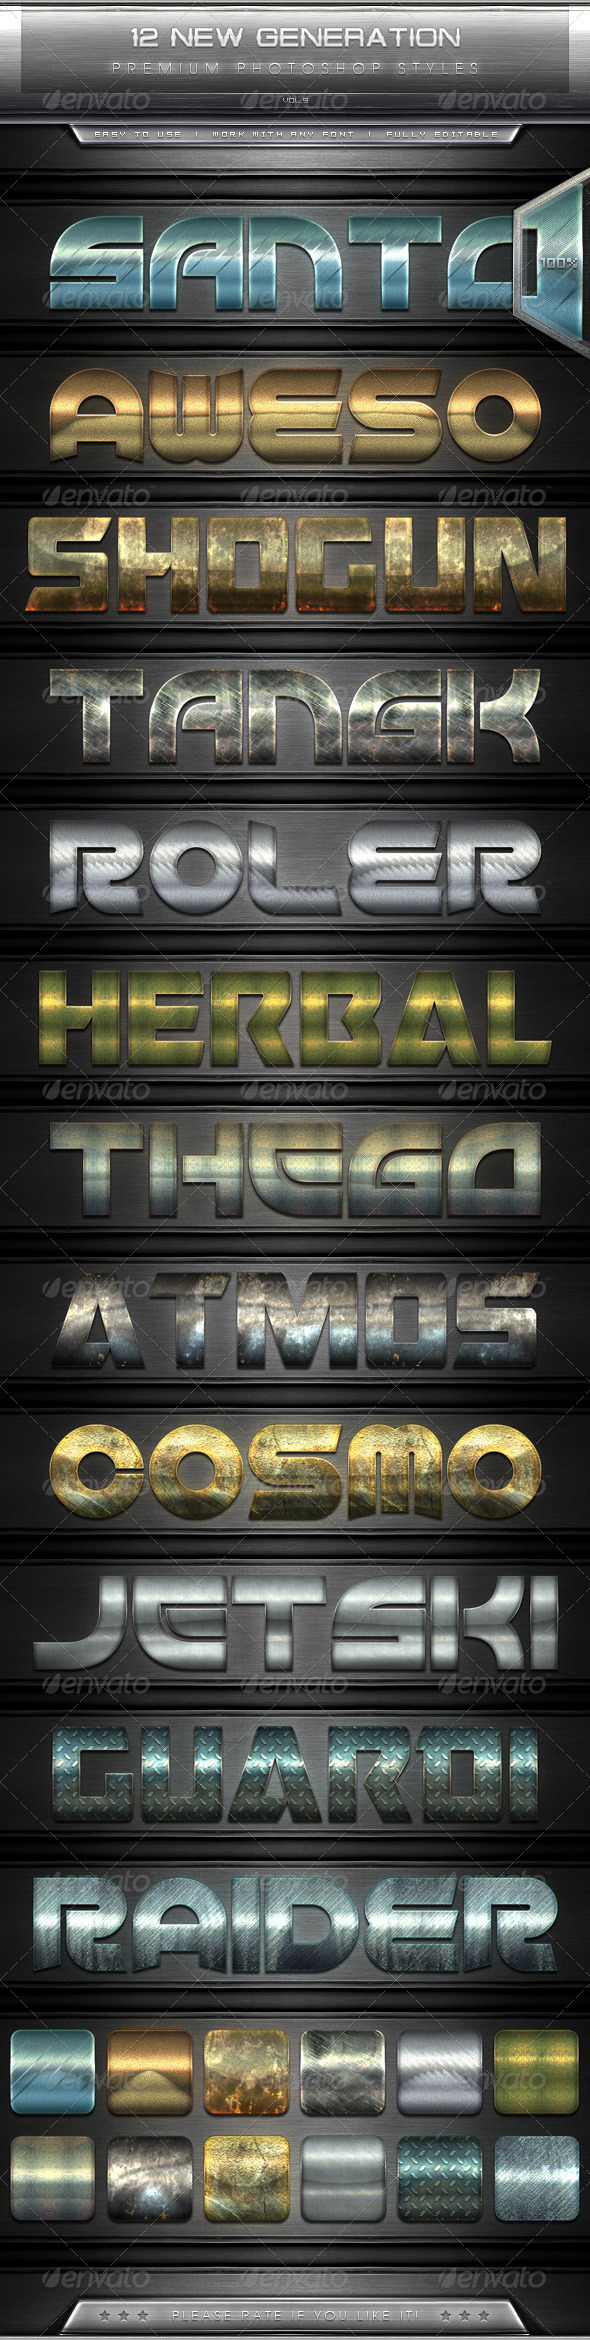 GraphicRiver 12 New Generation Text Effect Styles Vol.9 7822379